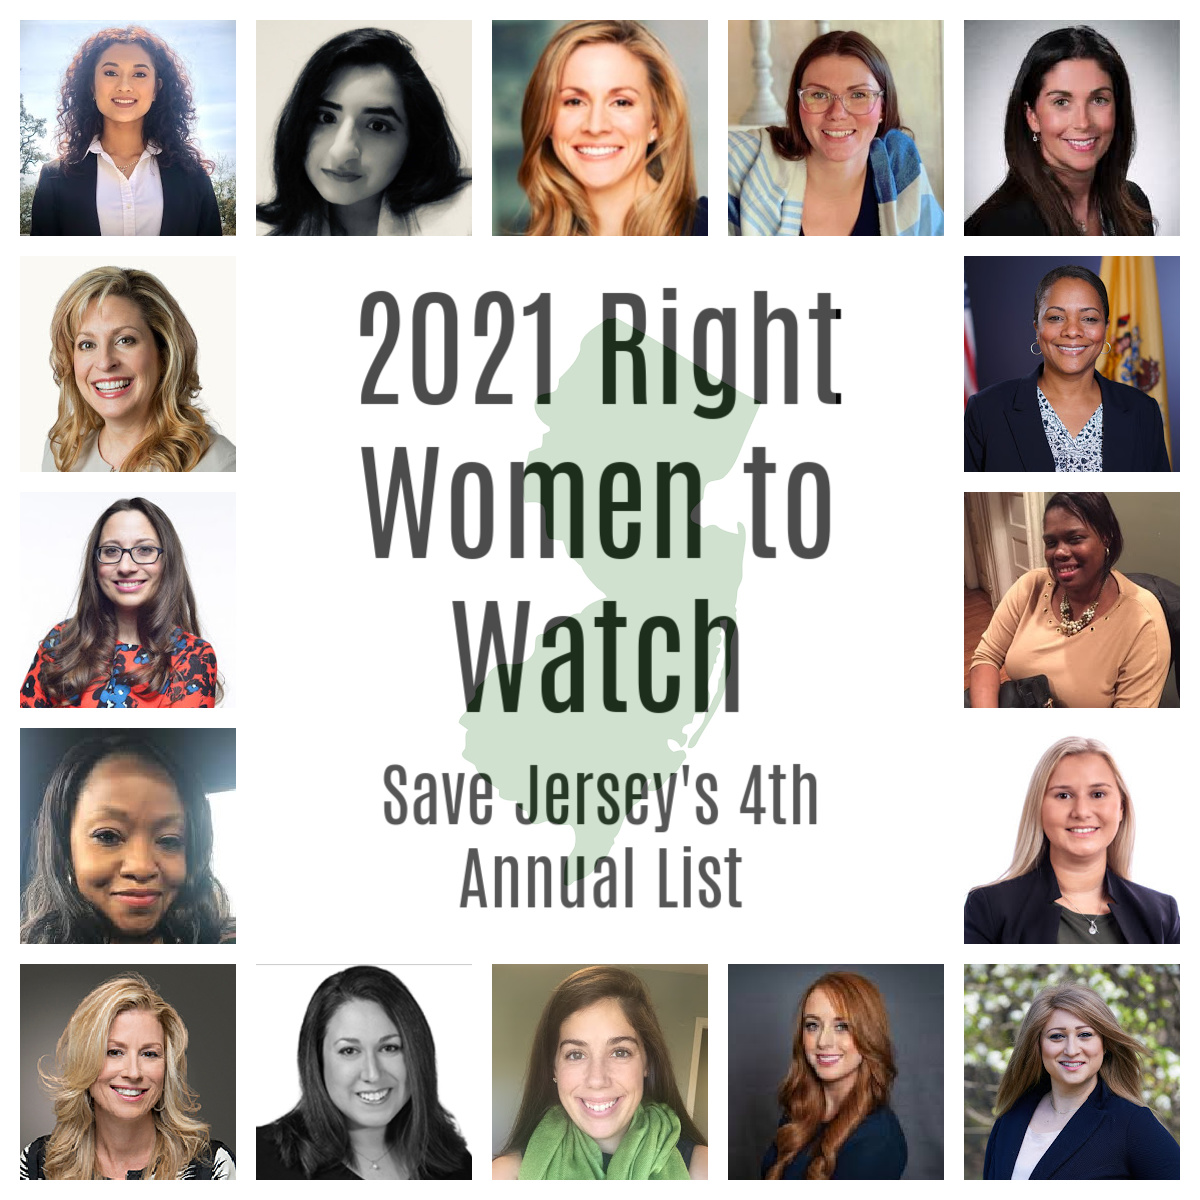 Save Jersey's 2021 Right Women to Watch List